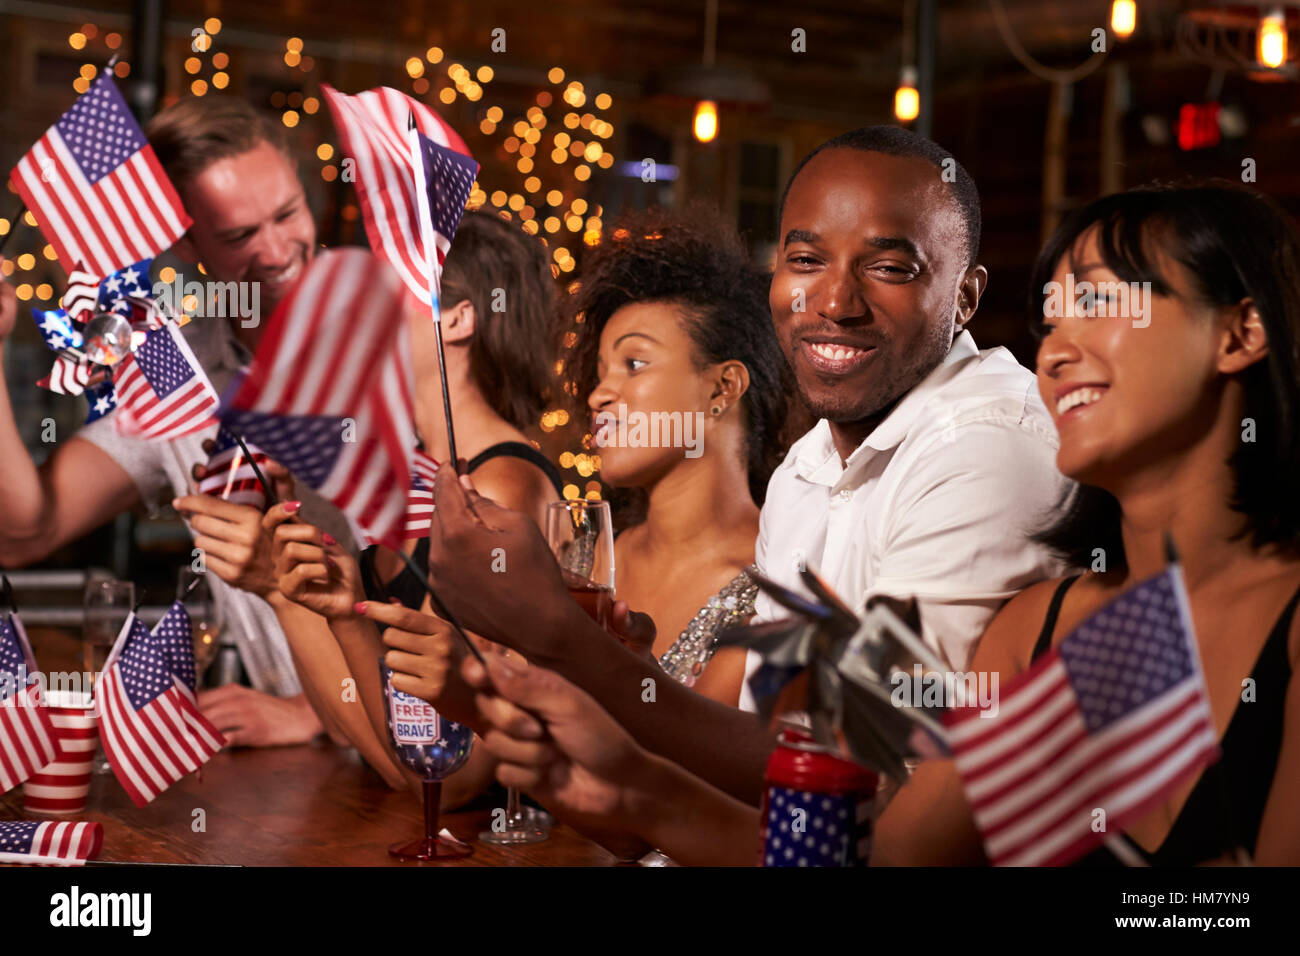 92478486bd Friends celebrating July 4th at a party in a bar Stock Photo ...